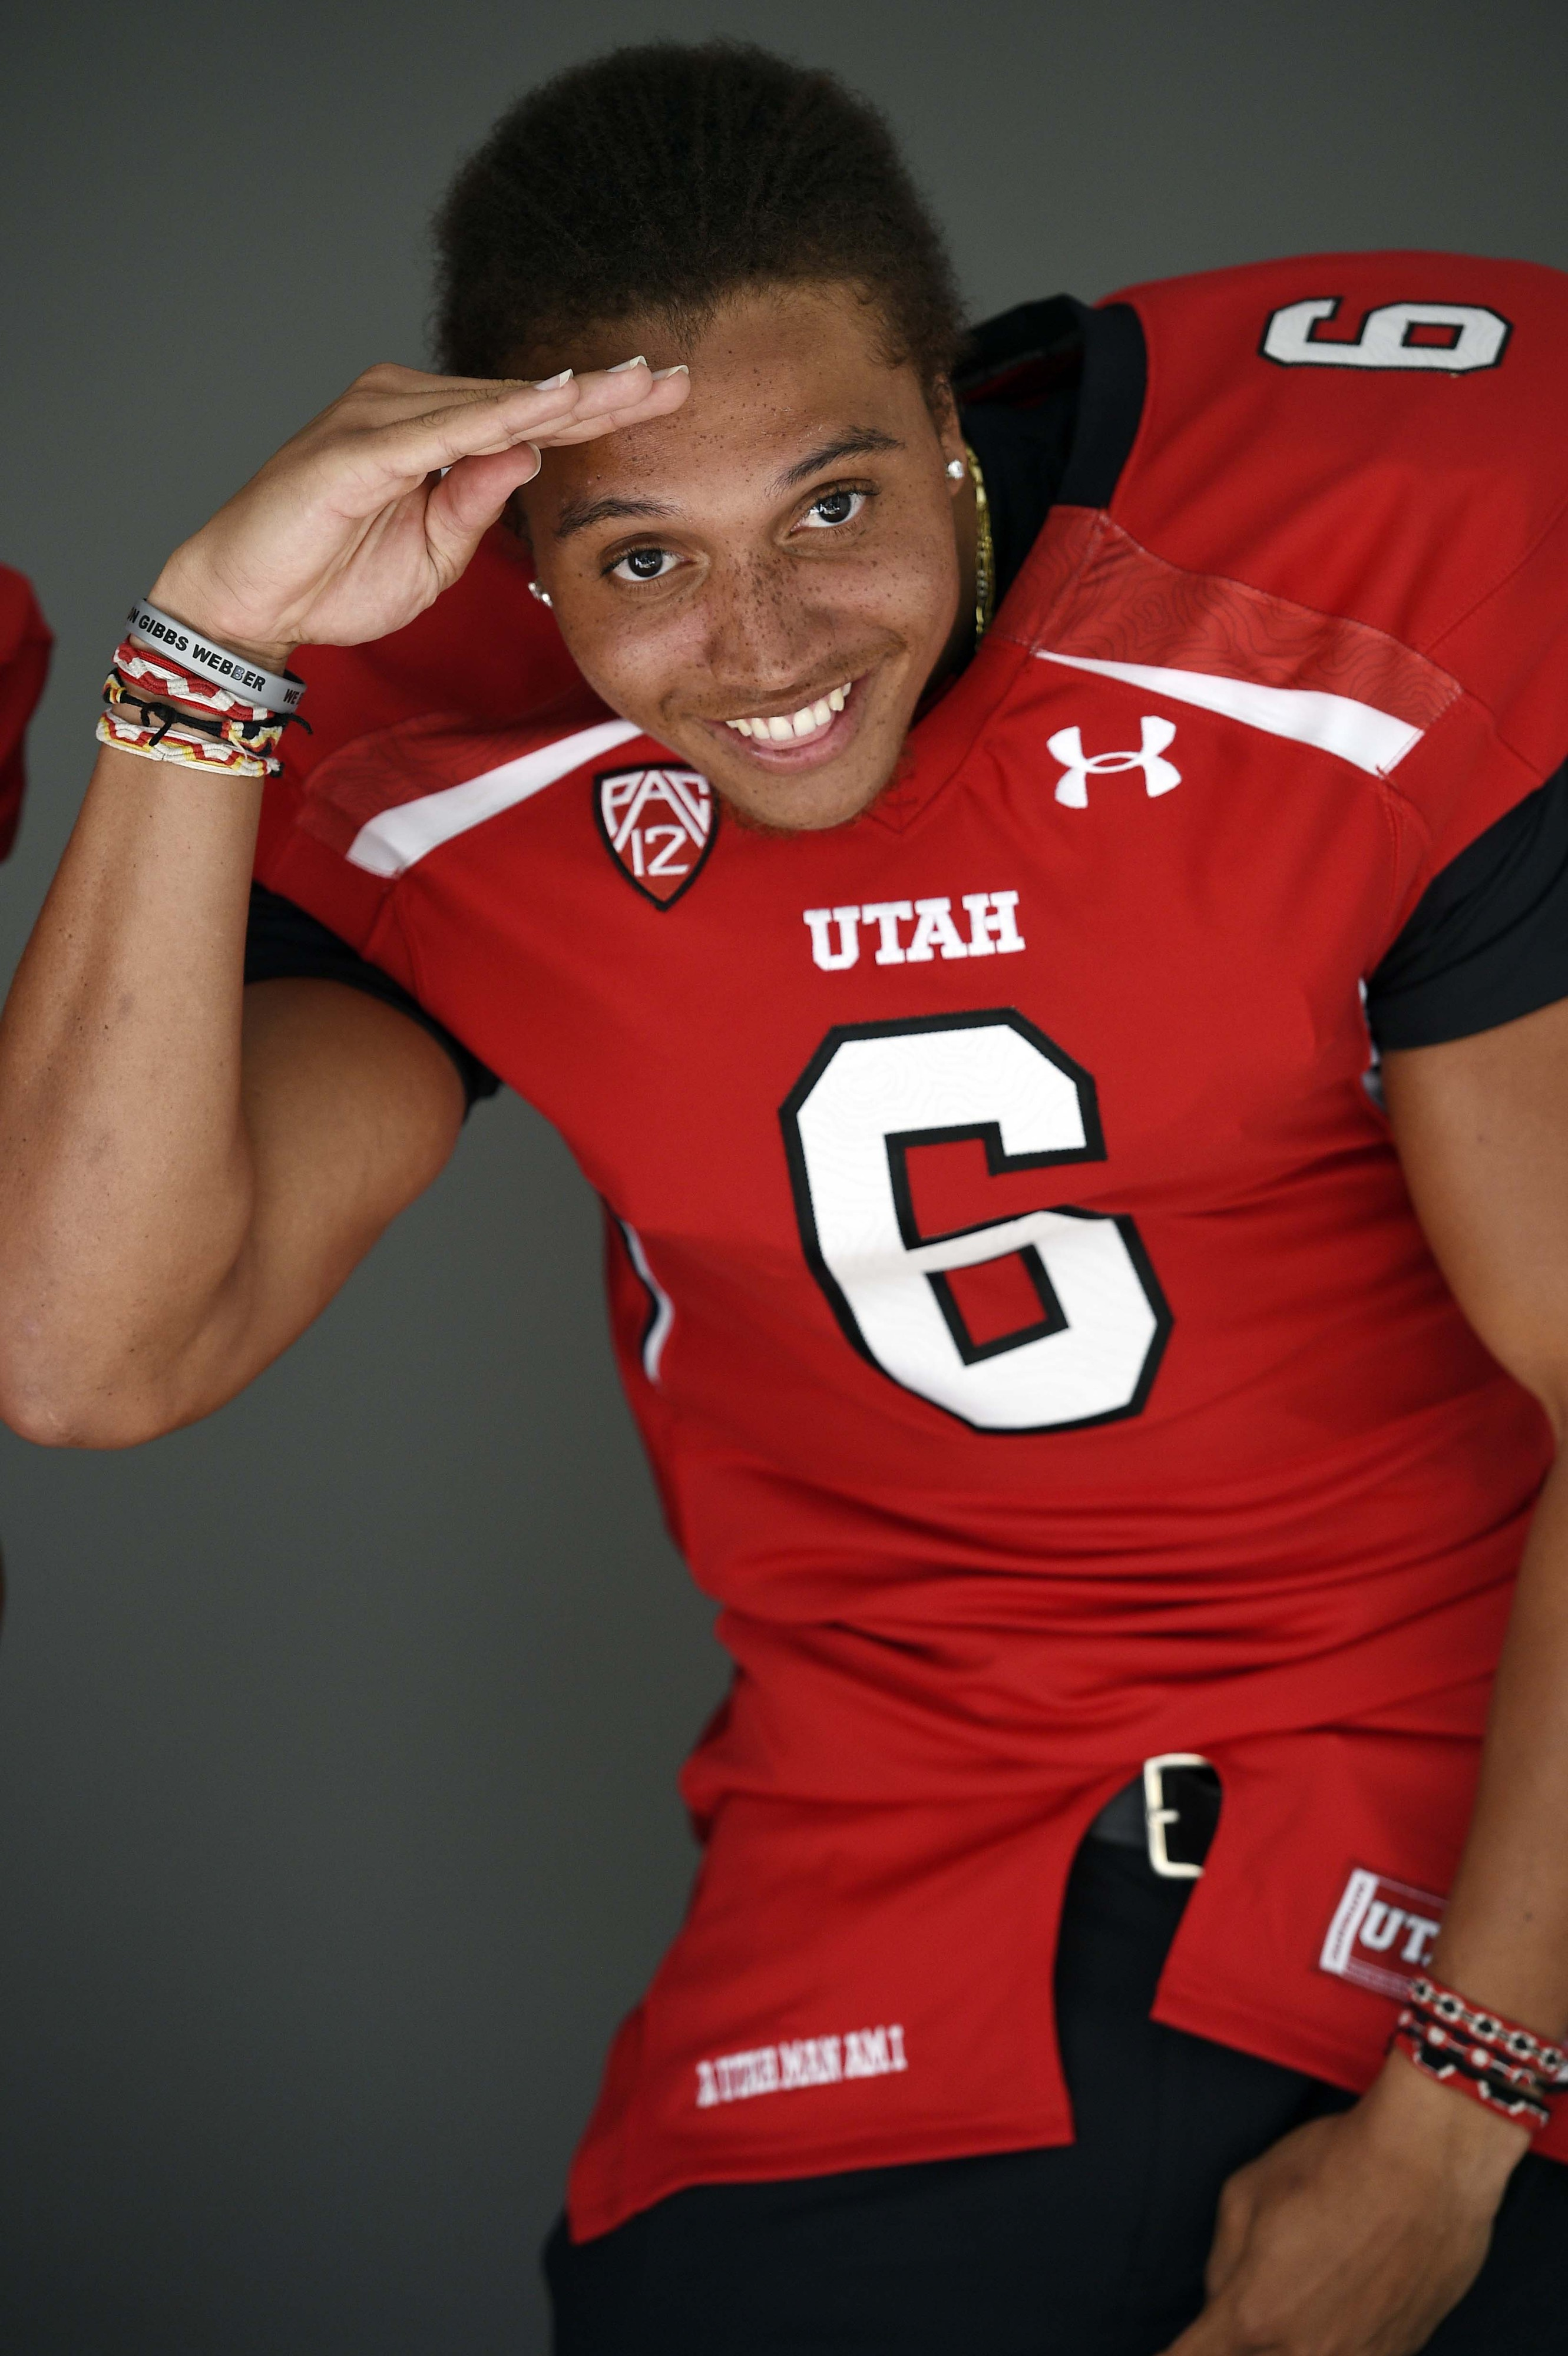 As usual, Utah wide receiver Dres Anderson was all smiles at Pac-12 media, yet the media picked his Utes fifth in the South division.